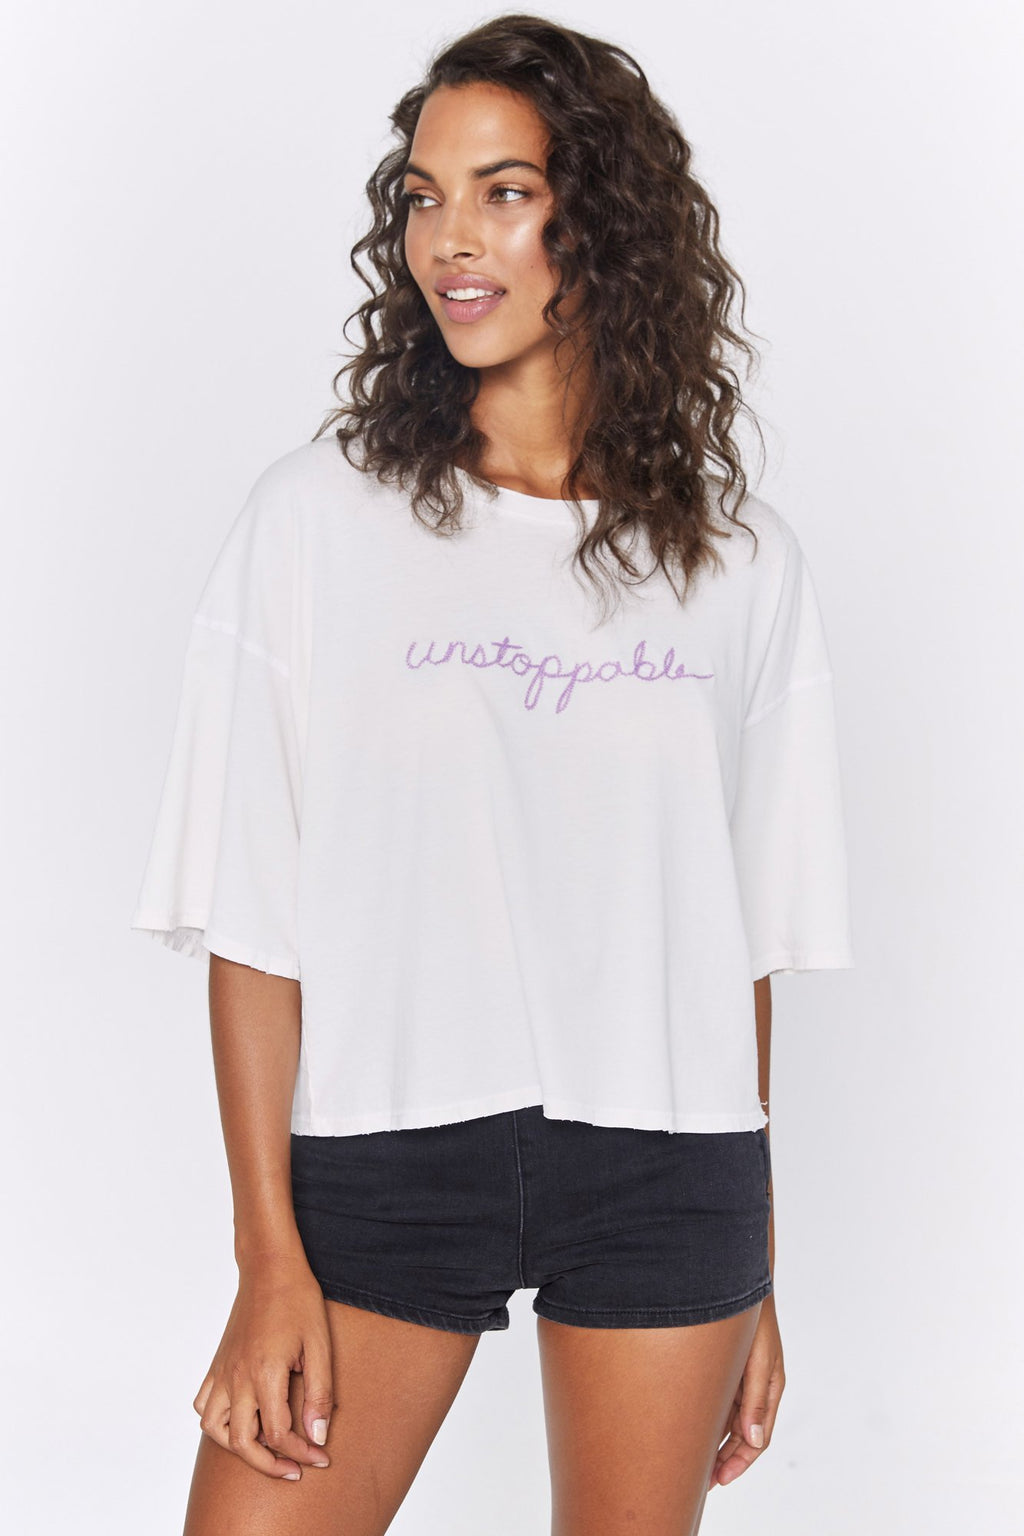 "Model wears a white over-sized spiritual gangster t-shirt. The unstoppable icon boyfriend tee has pink script that reads ""unstoppable""."